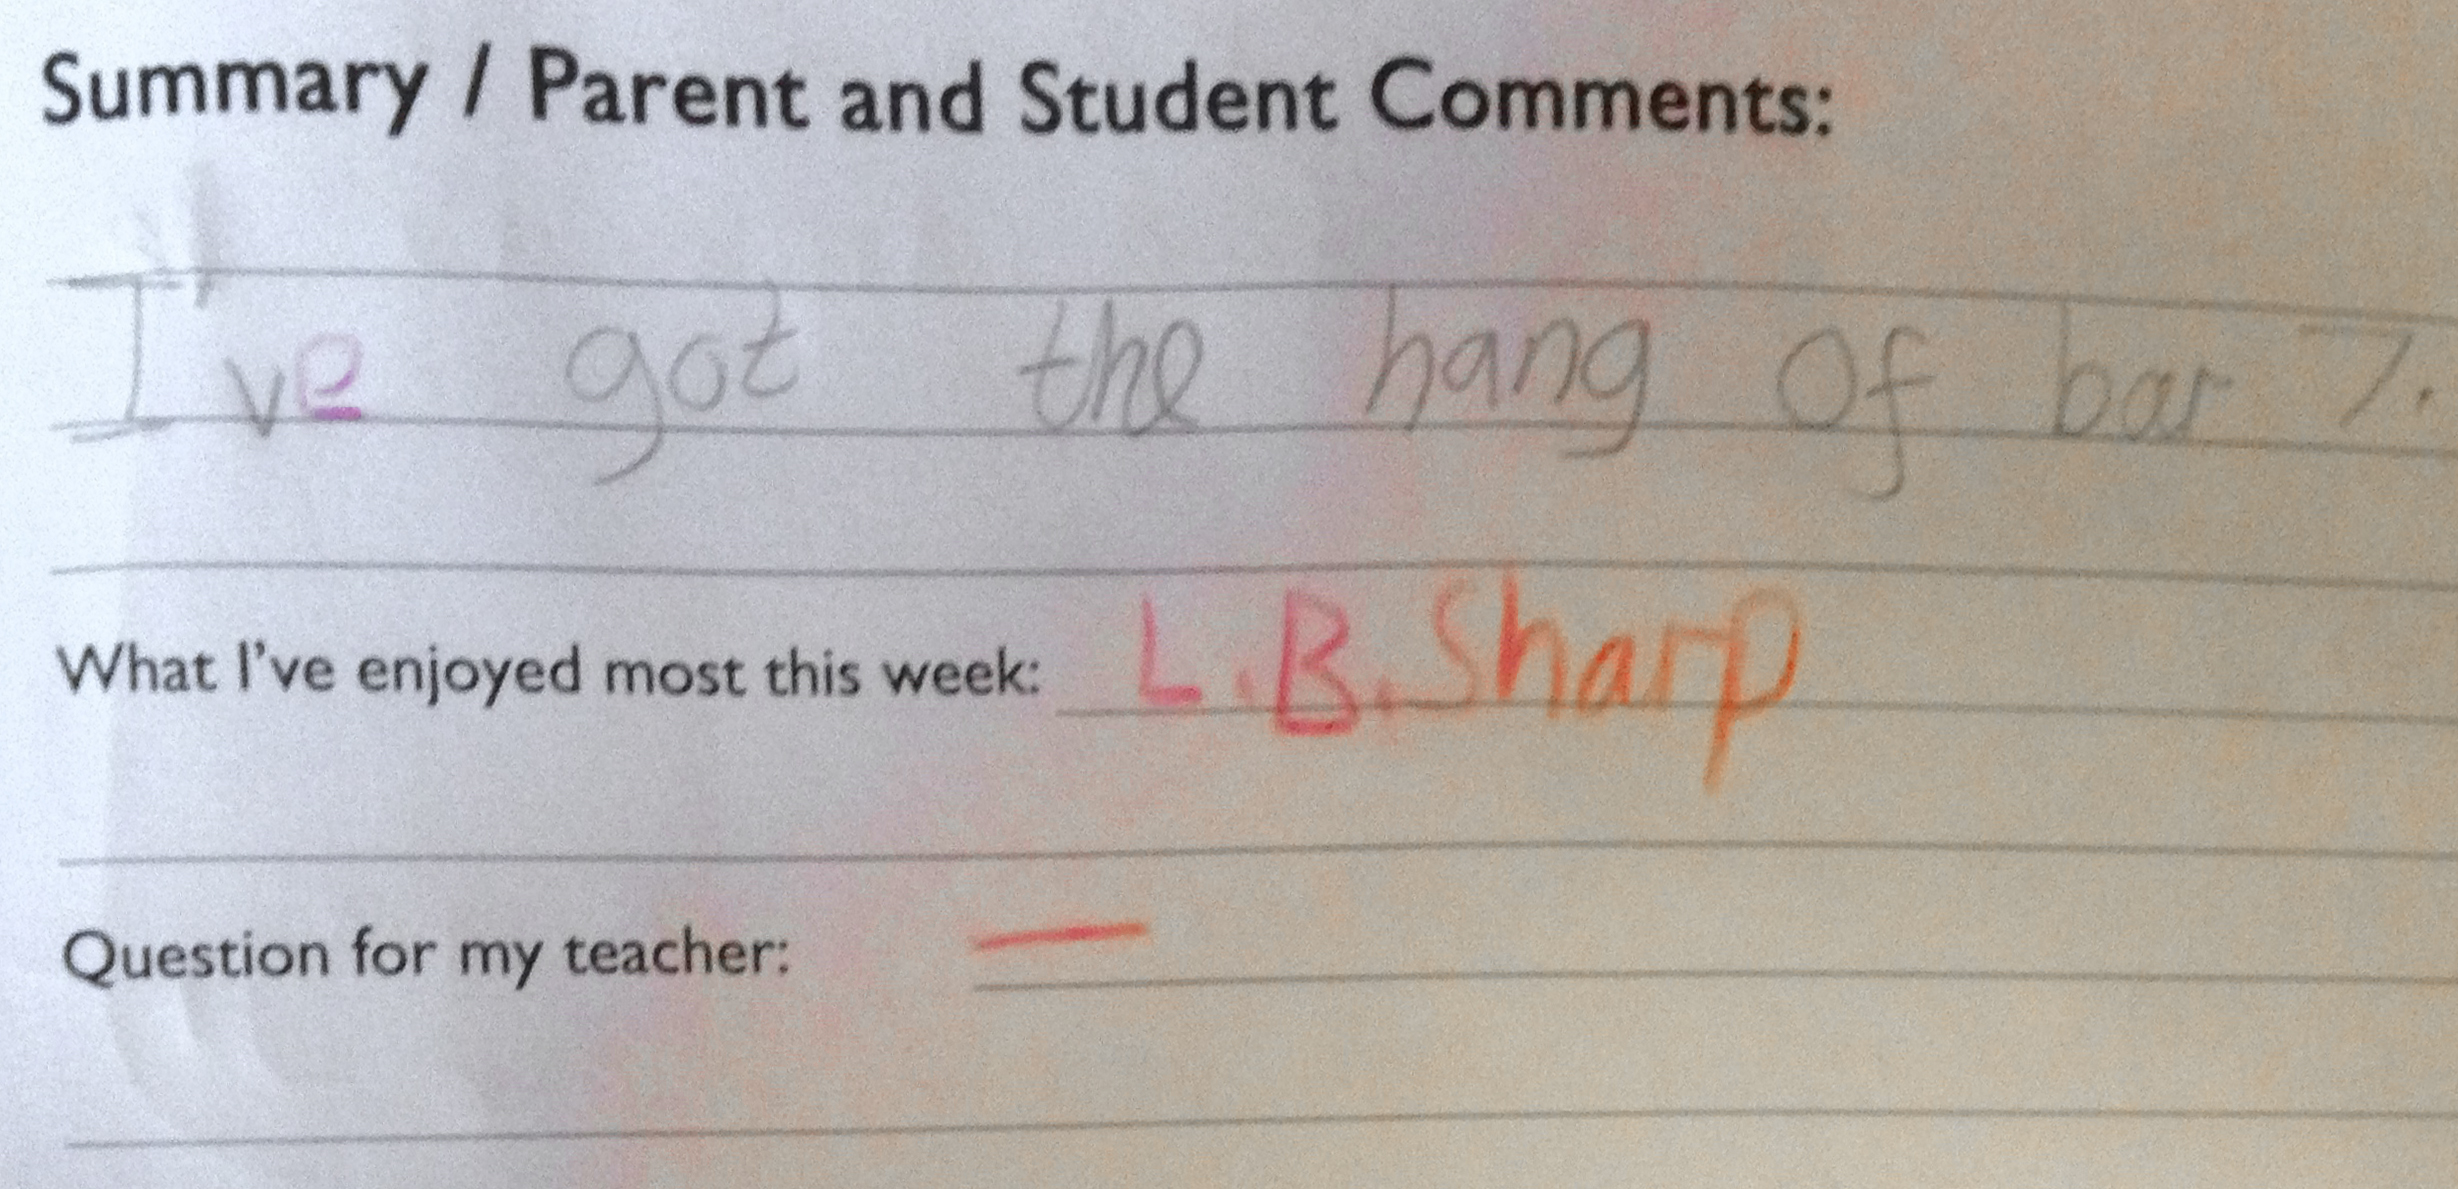 'L.B. Sharp' is an abbreviation of 'Let's be sharp', the name of a piece of music. I encourage abbreviation so younger children can write quickly and the whole task doesn't need to become a chore.